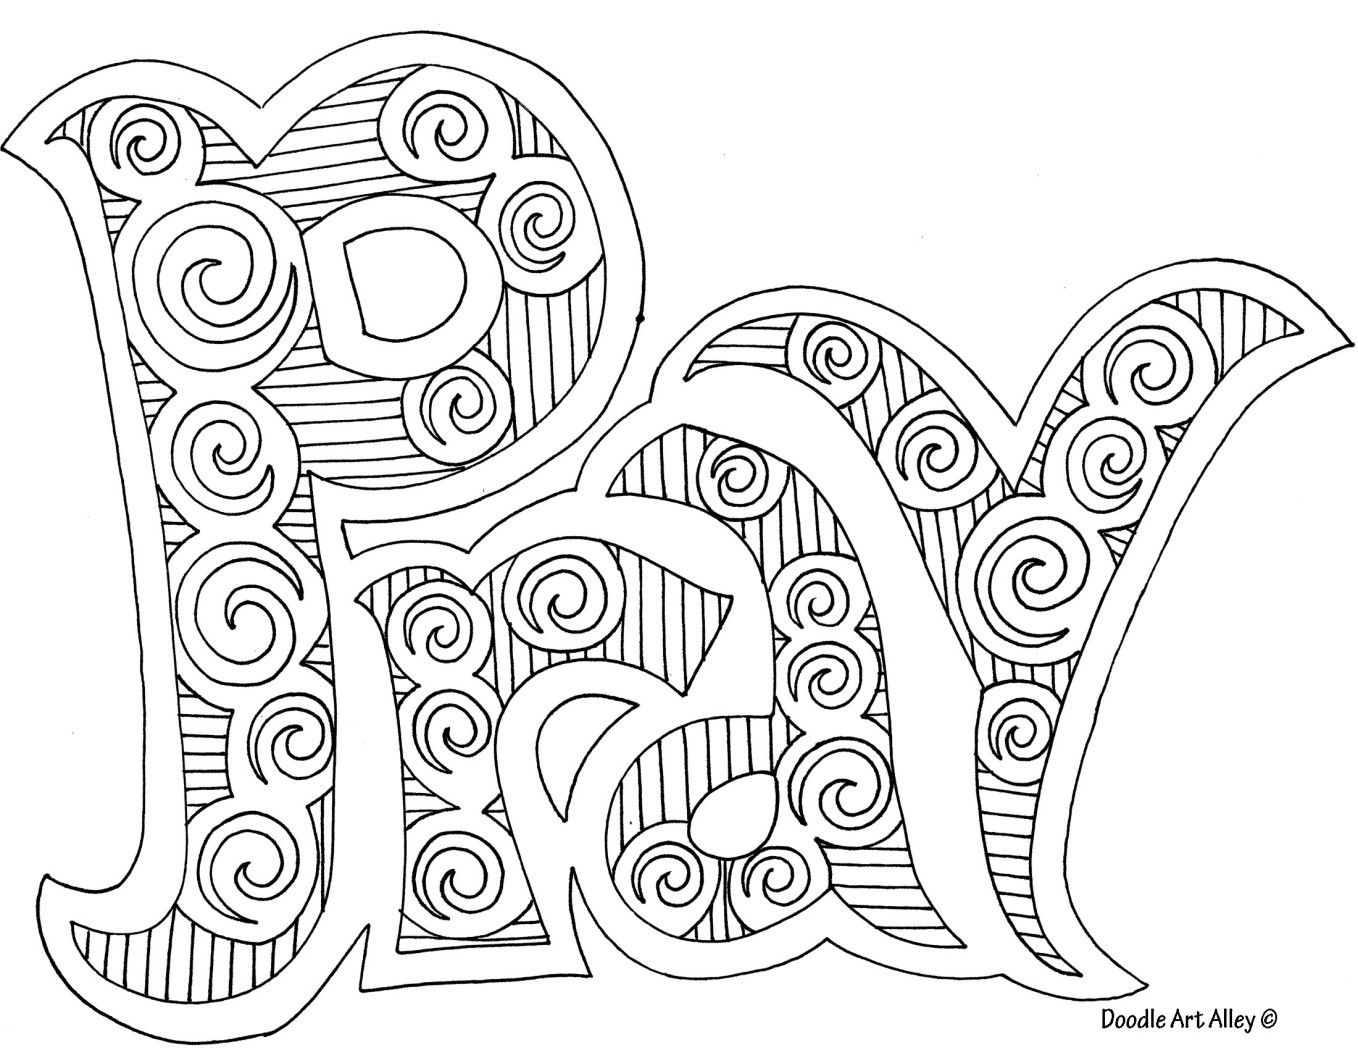 Doodle Art Pray Nice Coloring Page For Older Kids Coloring